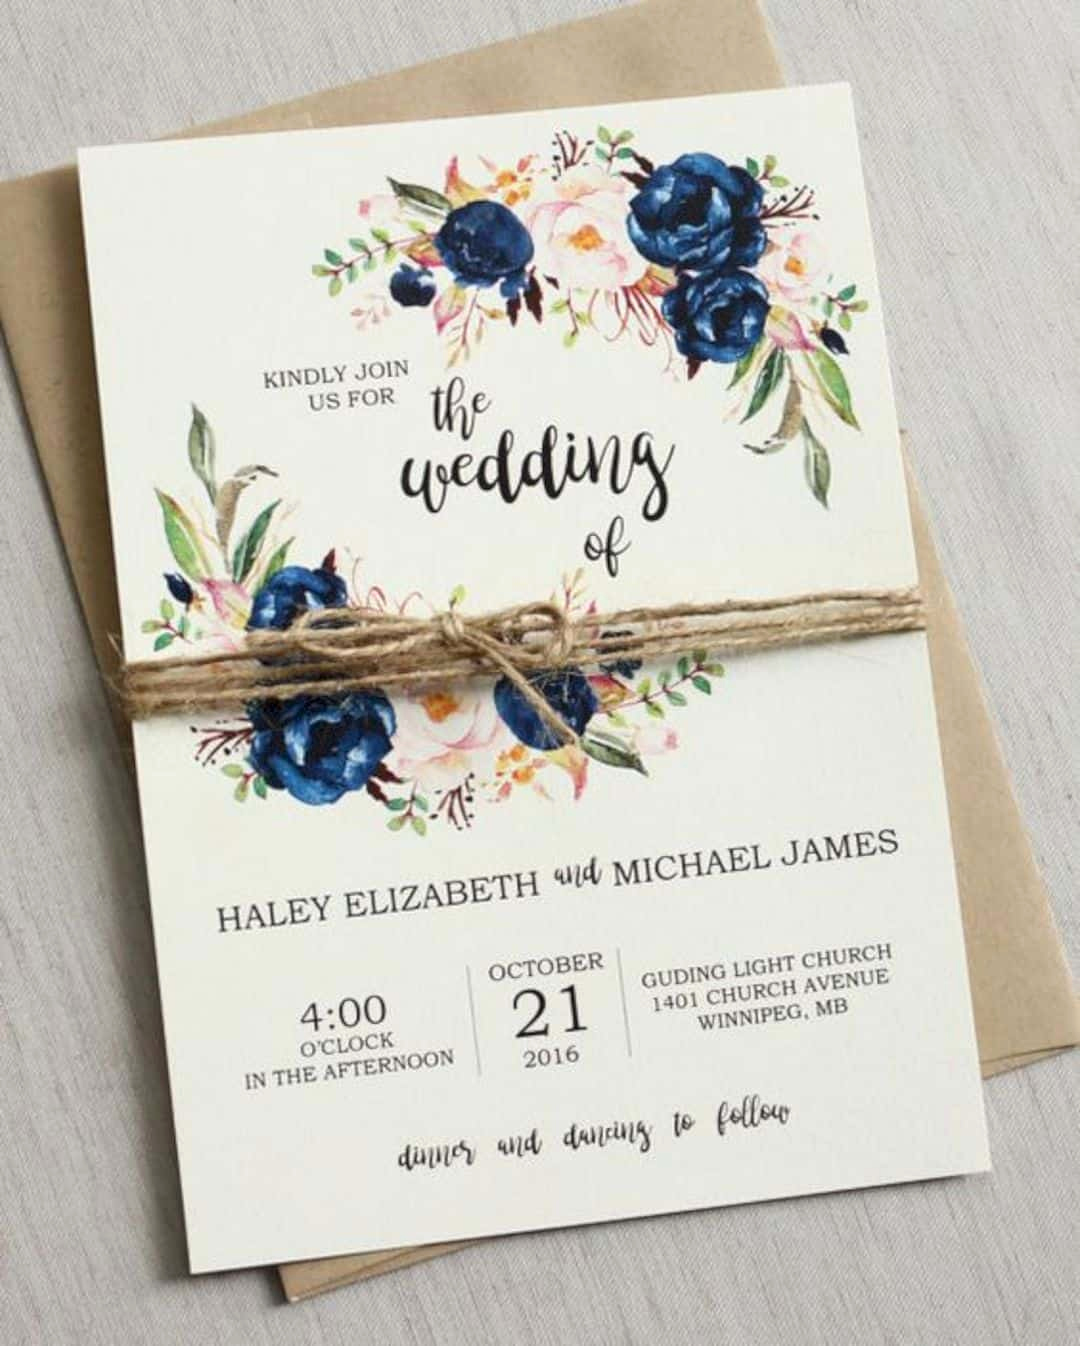 Wedding Invitation Ideas Pinterest Inspirational 16 Beautiful Wedding Invitation Ideas